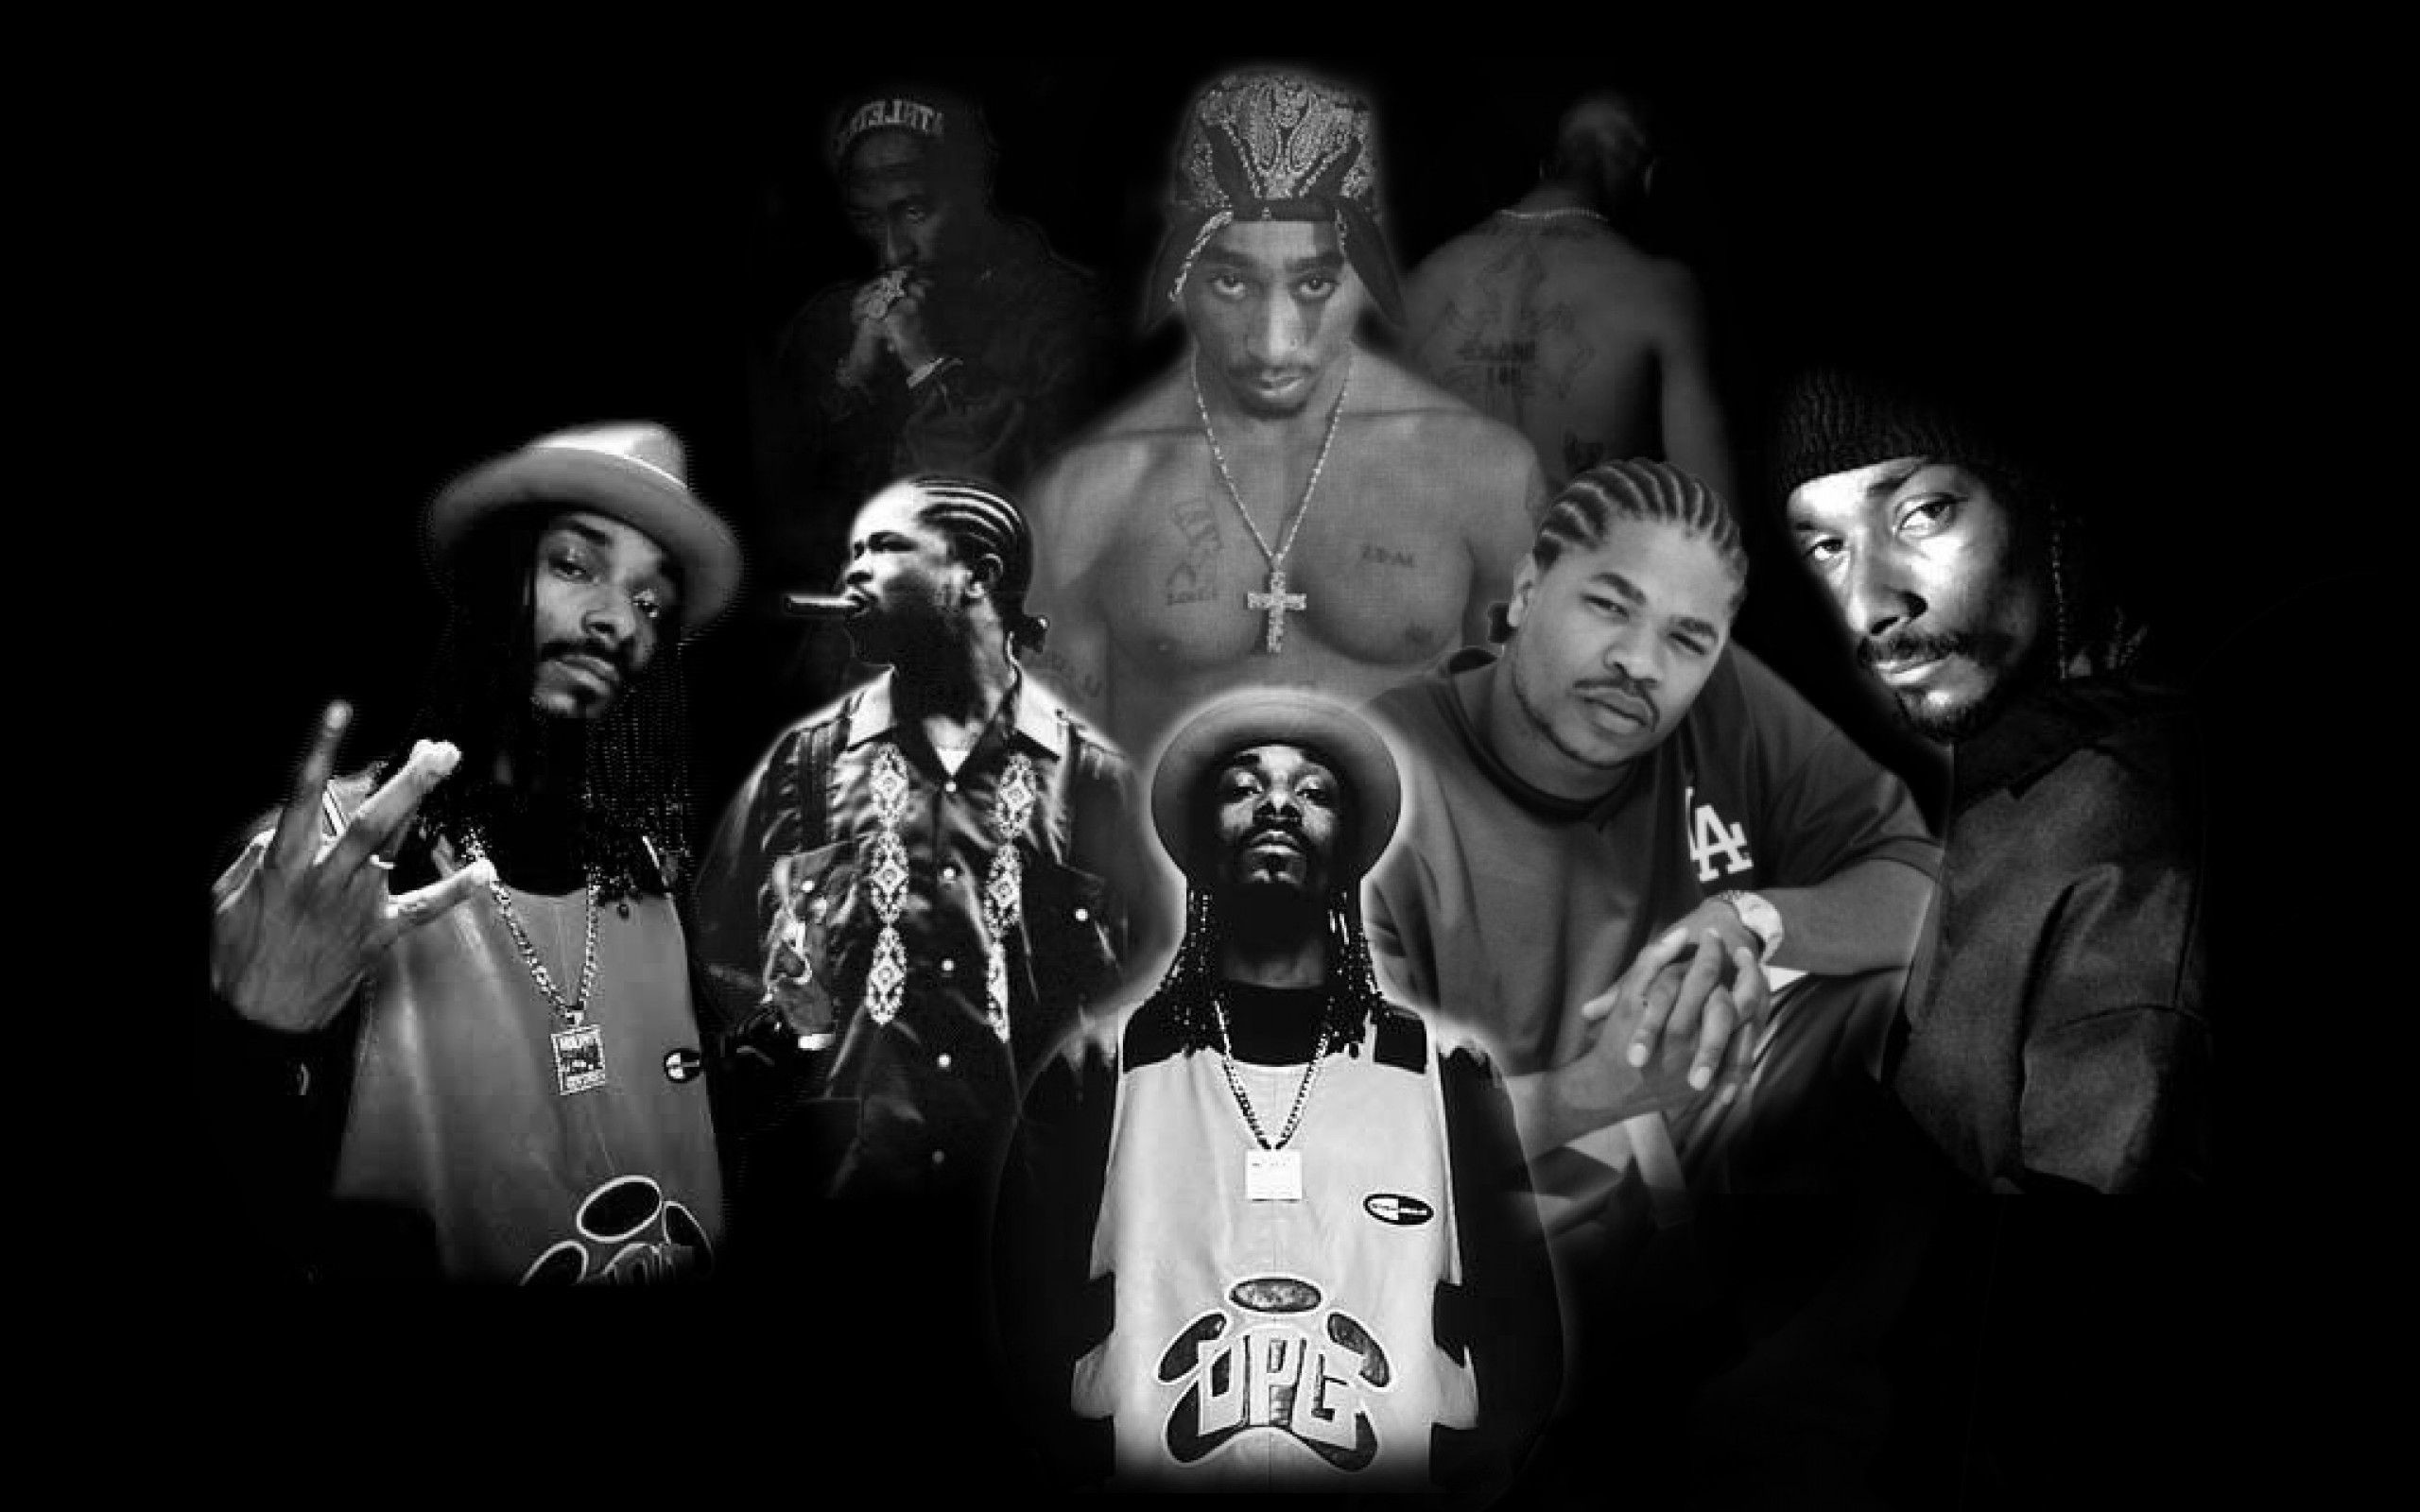 2pac snoop xzibit desktop wallpapers colourful background photos download  free best windows display 2560×1600